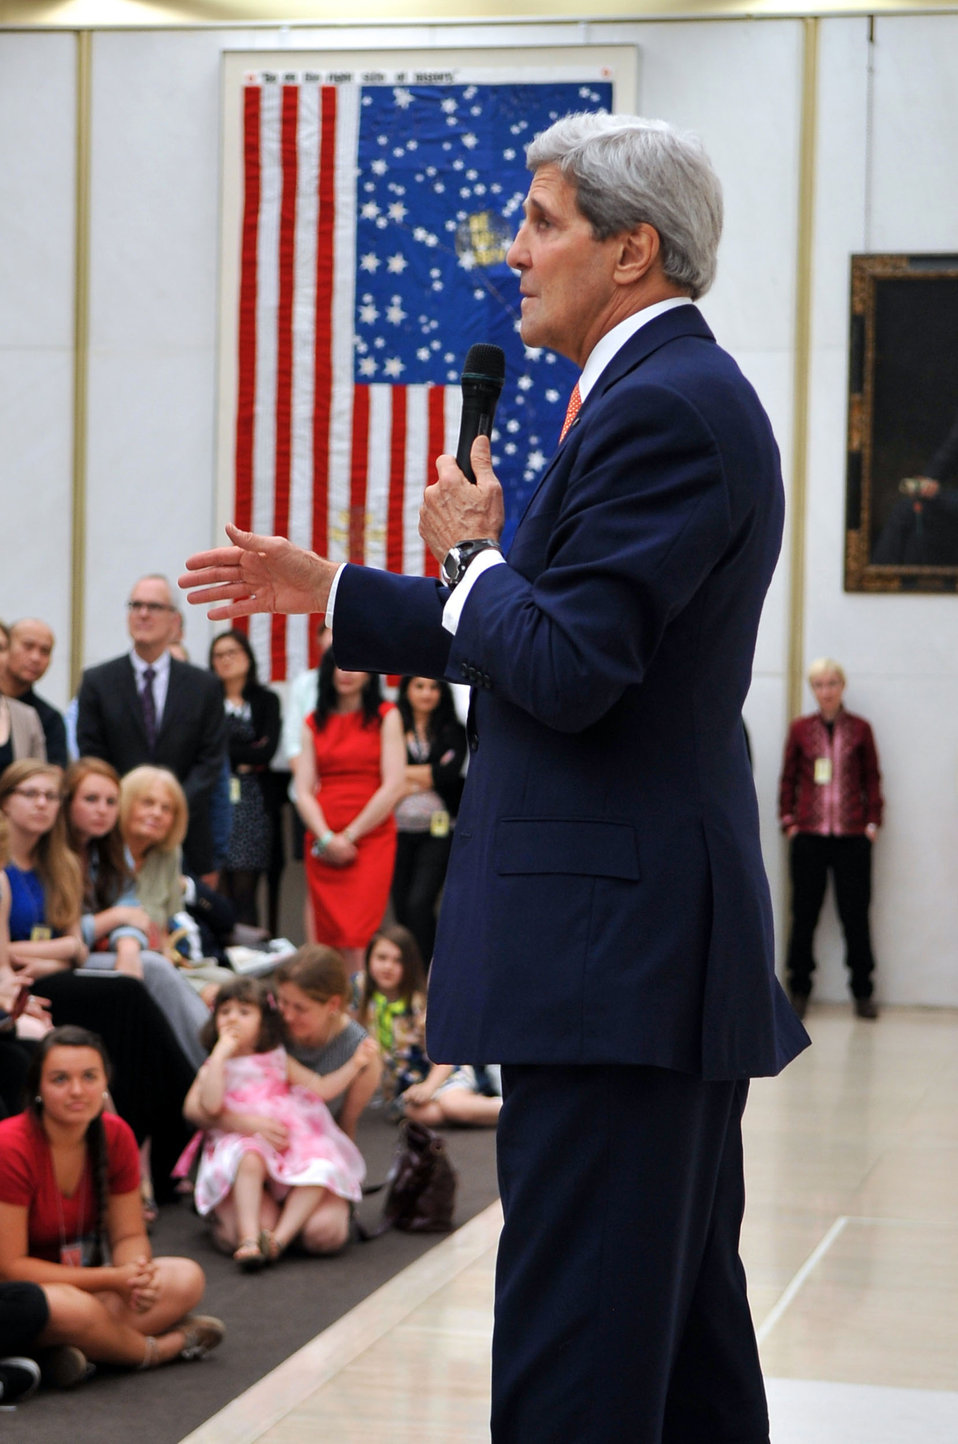 Secretary Kerry Addresses Embassy London Staff and Families